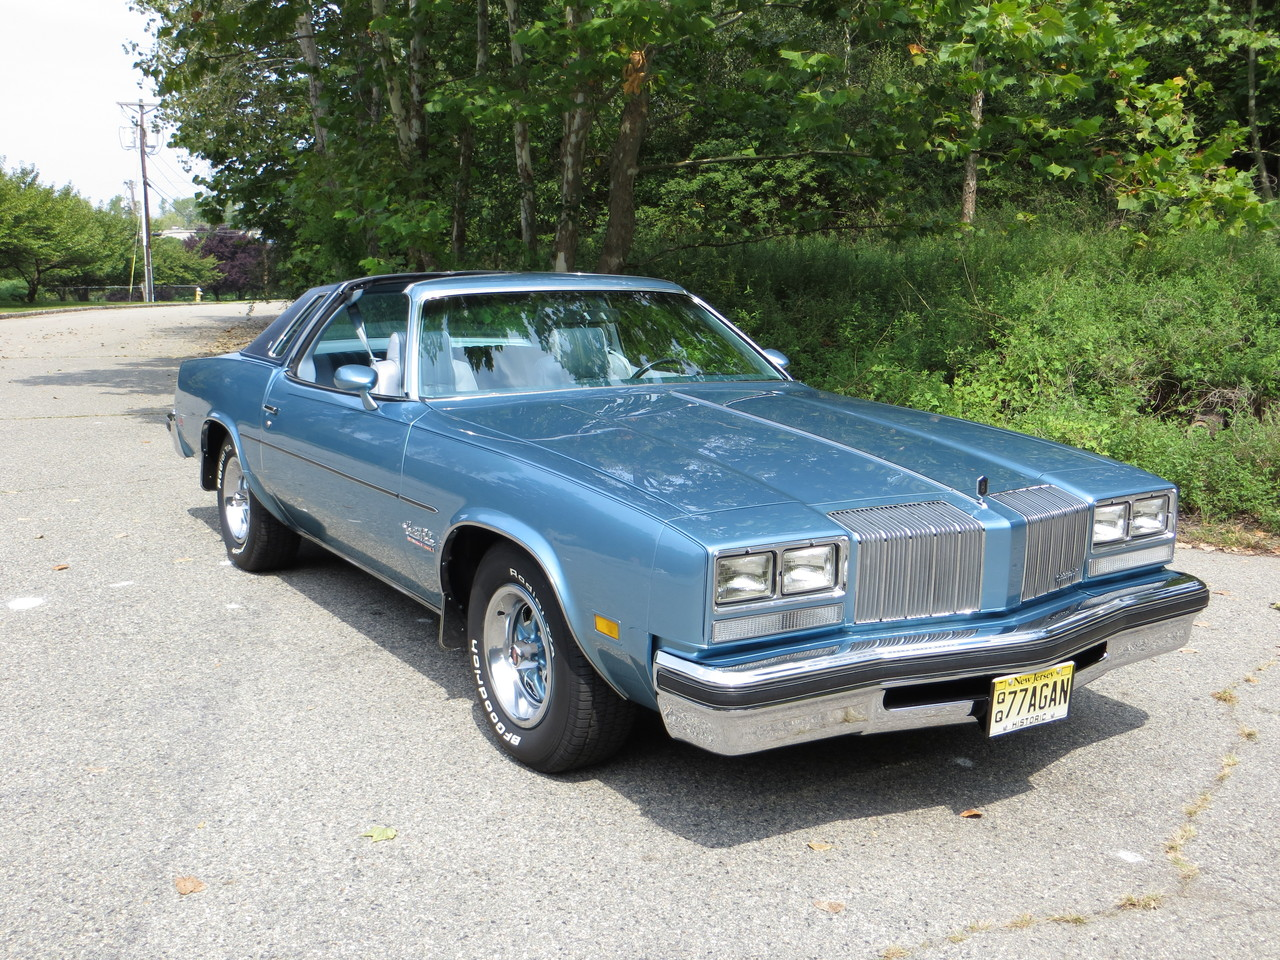 Big blue 1977 cutlass salon oldsmobile photes for 1977 oldsmobile cutlass salon